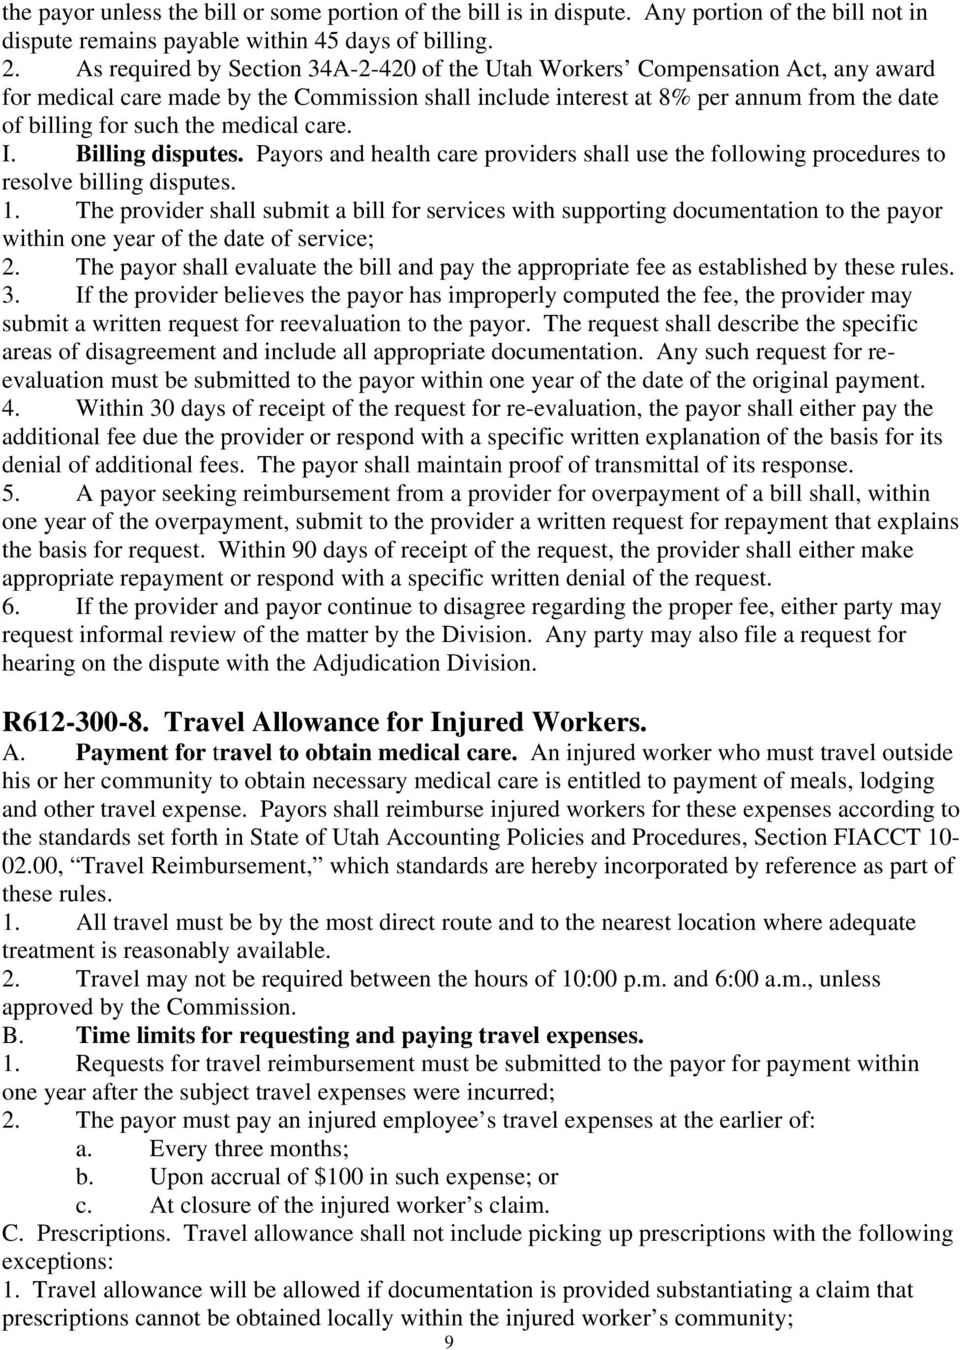 medical care. I. Billing disputes. Payors and health care providers shall use the following procedures to resolve billing disputes. 1.